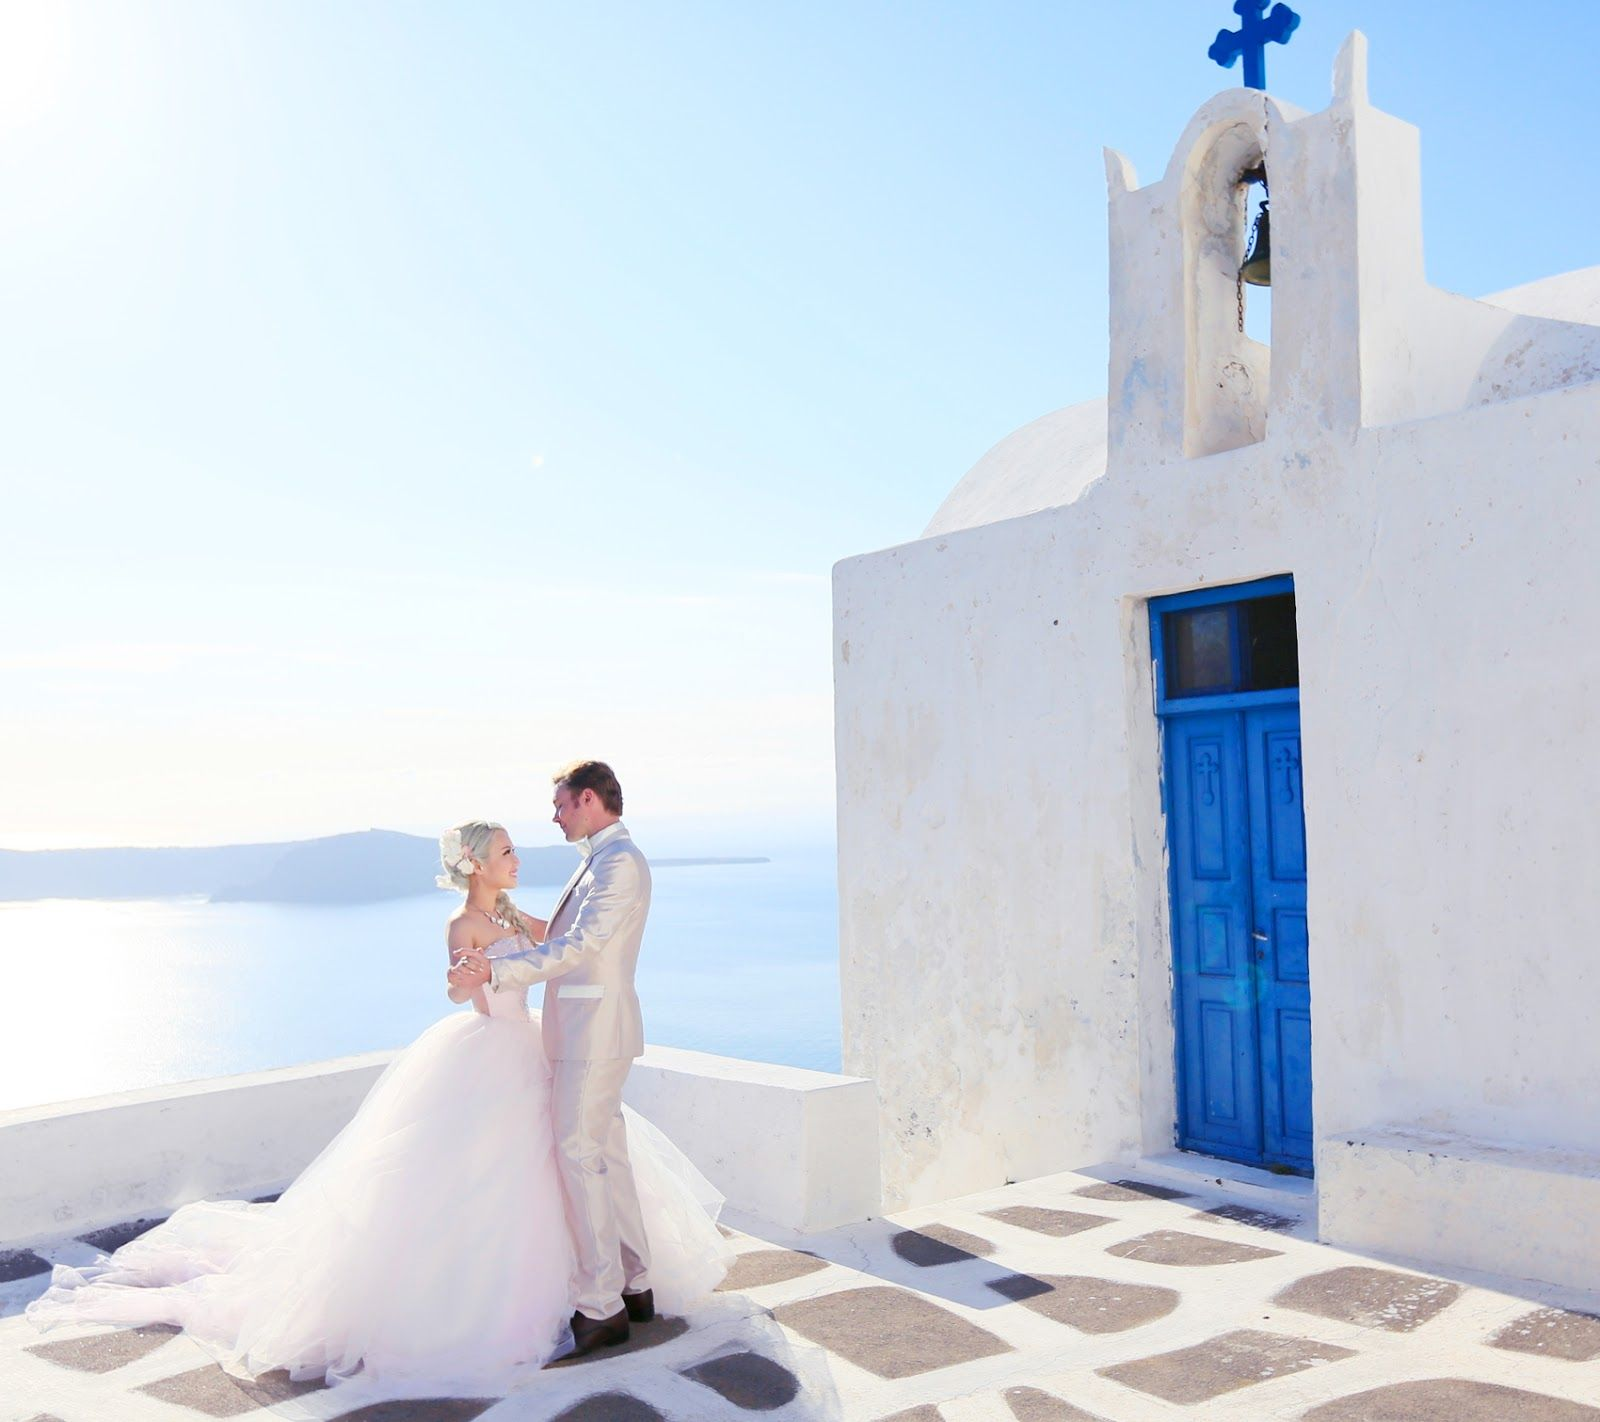 Xiaxue S Amazing Wedding Shoot With Sunrise Greece In Santorini Xiaxue Blogspot Com Wedding Photo Inspiration Wedding Photoshoot Greece Wedding